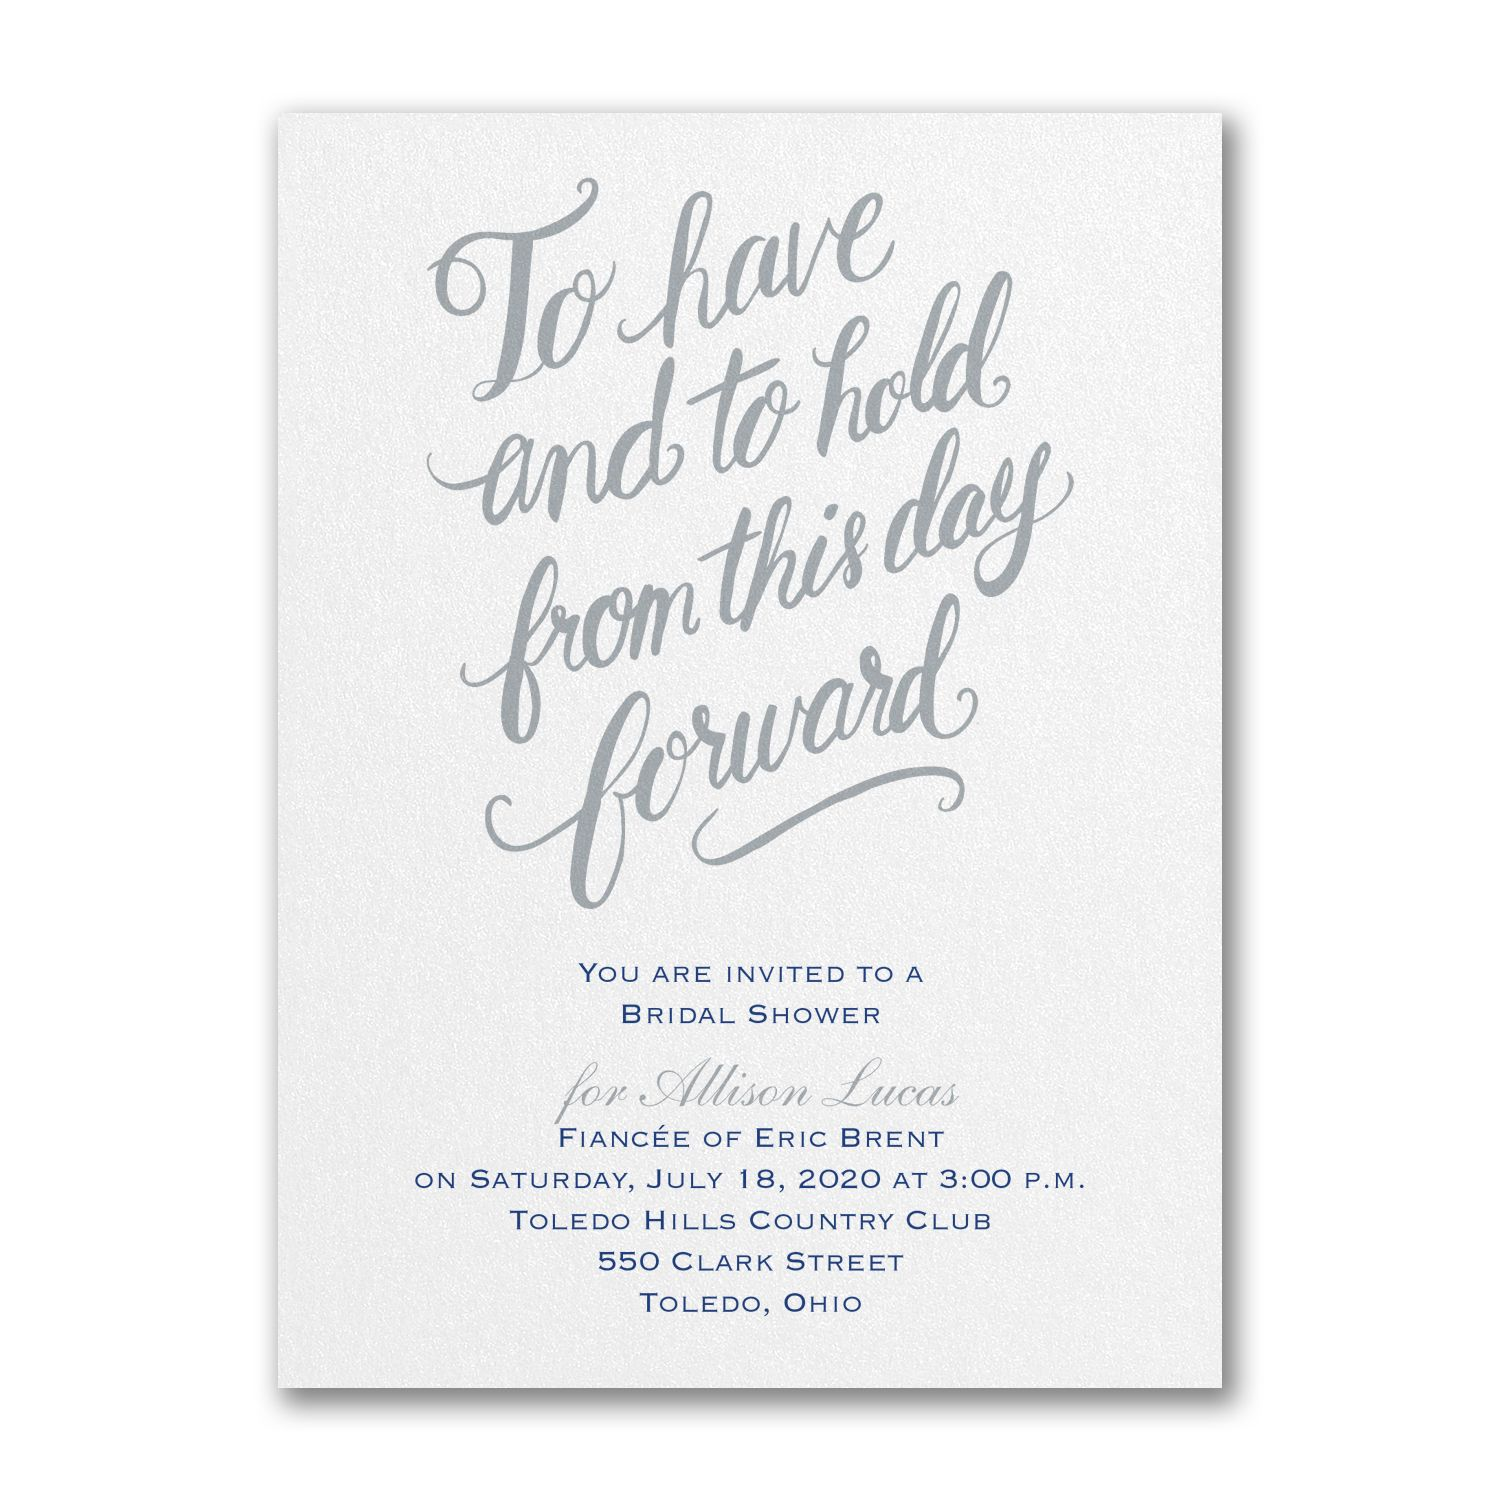 Have and hold wedding bridal shower invitations http have and hold wedding bridal shower invitations httppartyblockinvitations occasions sa monicamarmolfo Choice Image